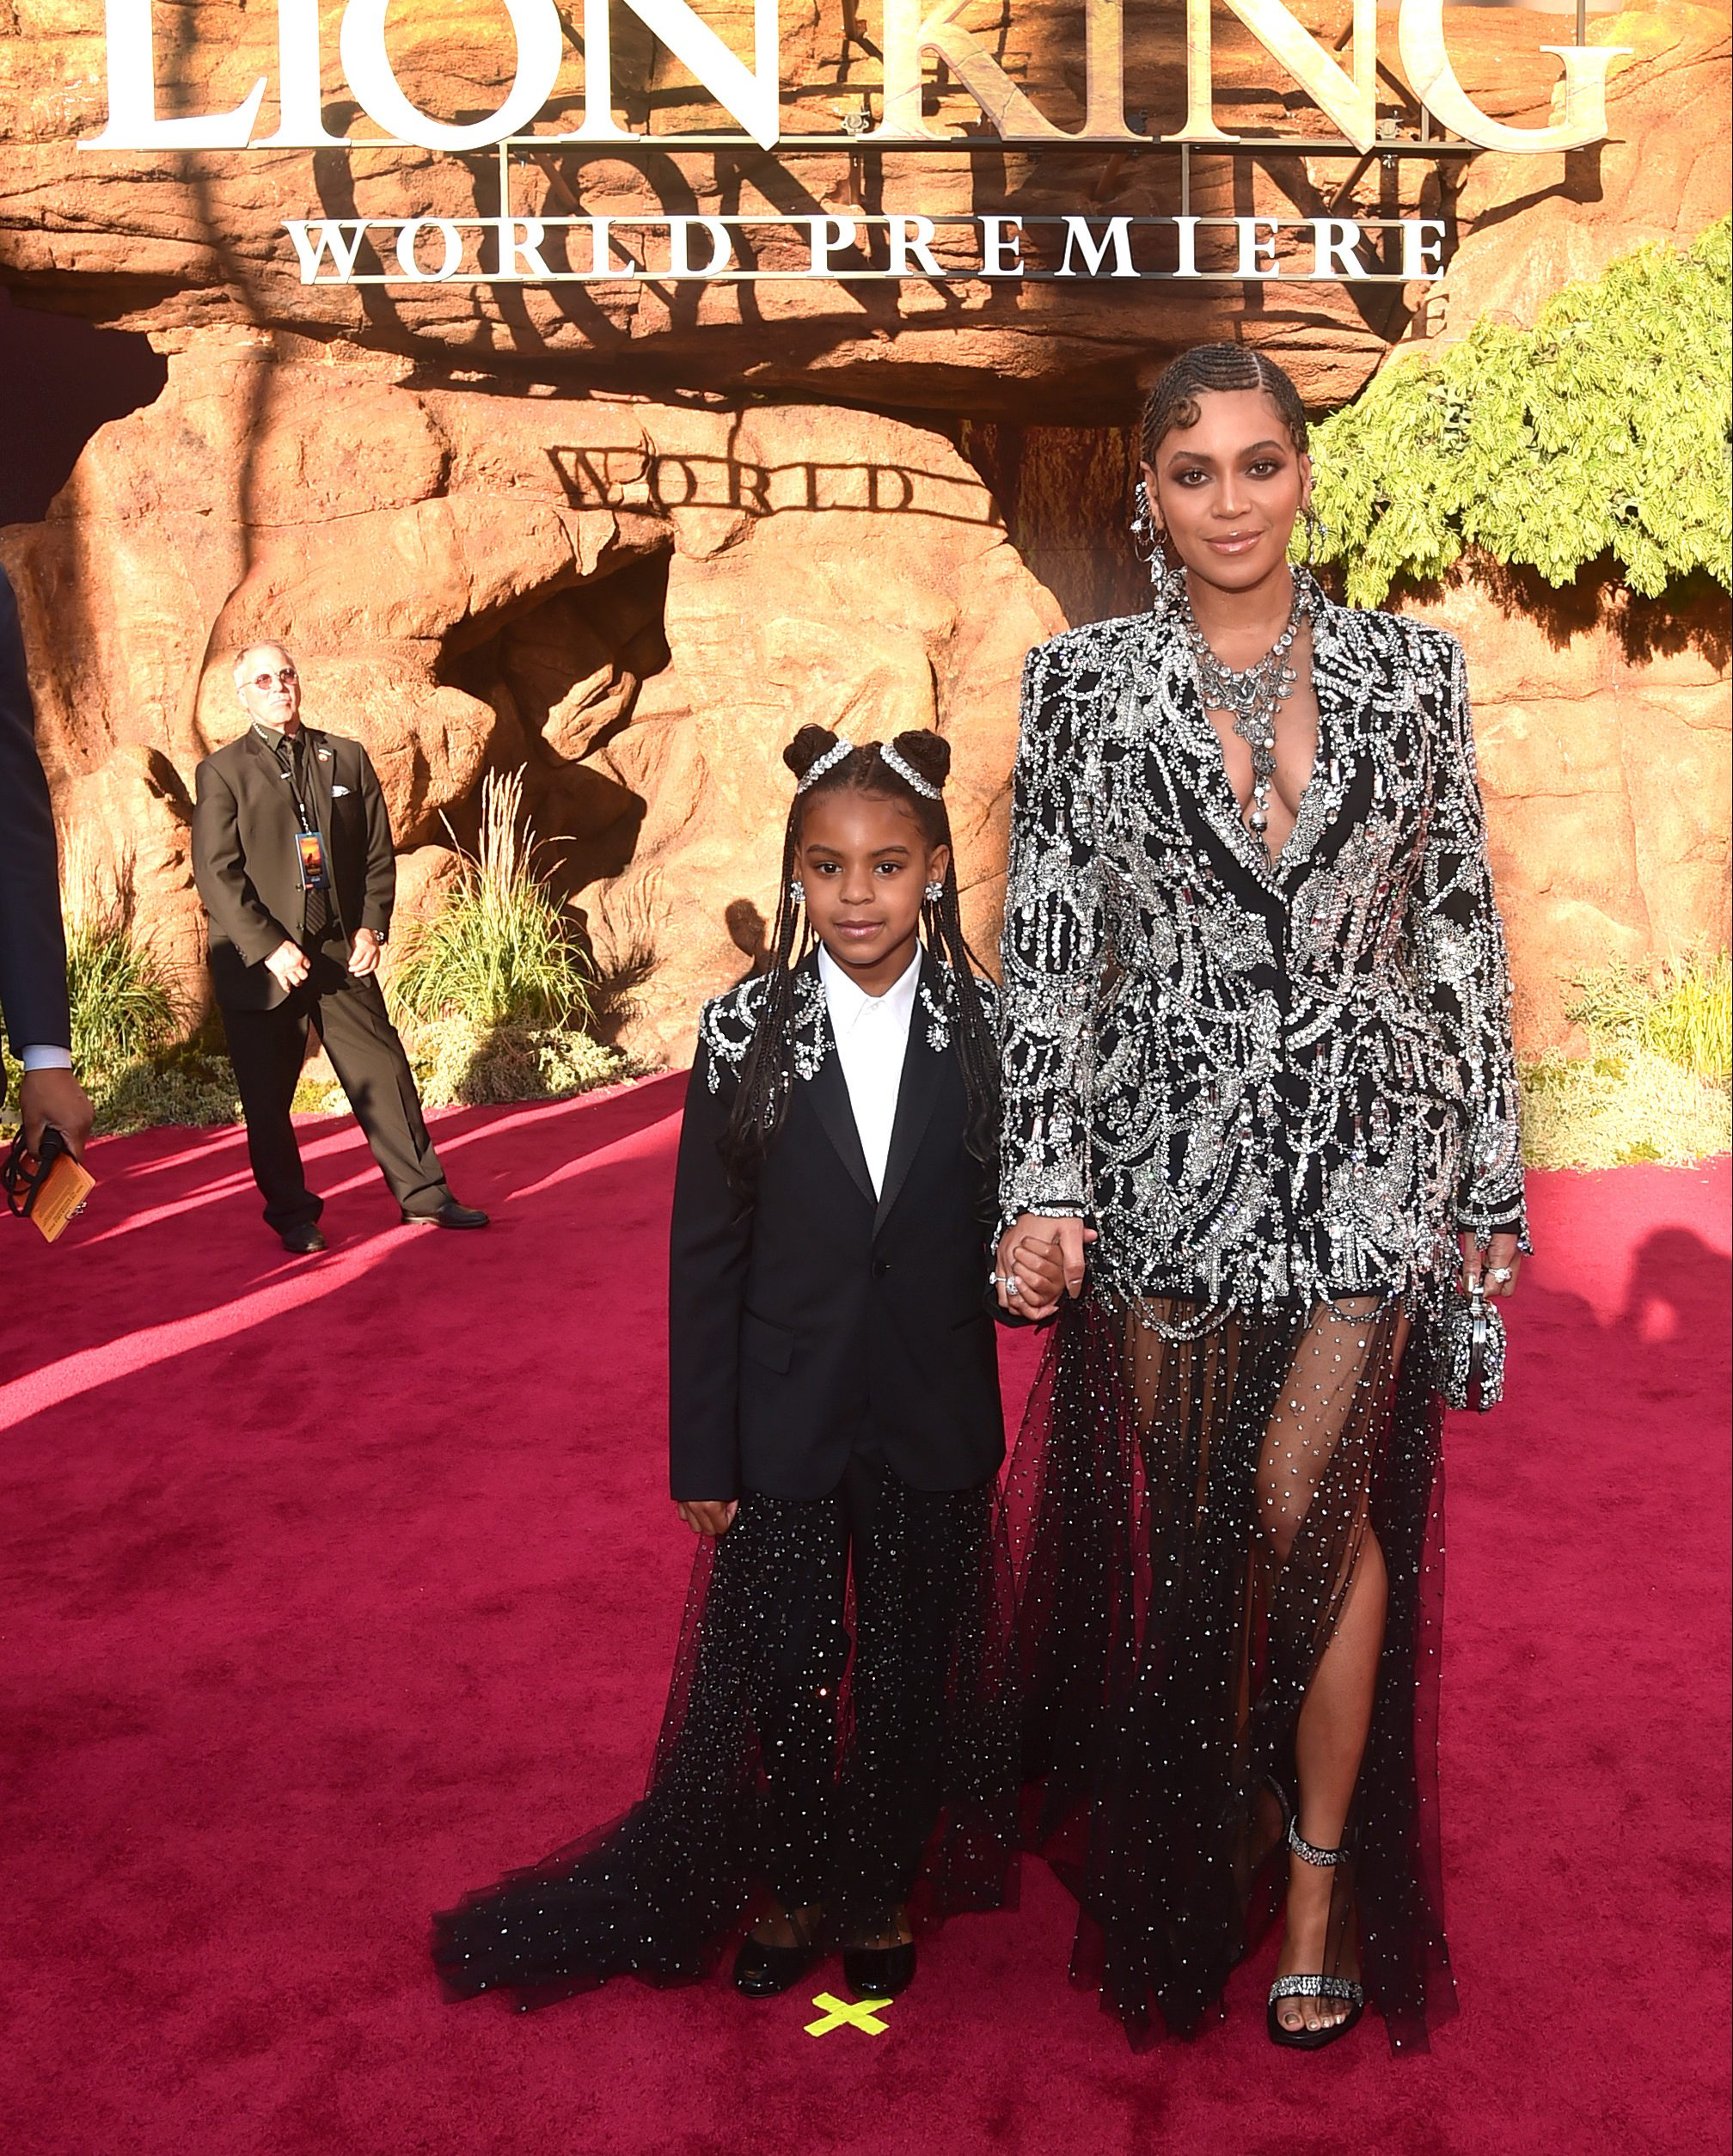 Blue Ivy Carter and Beyoncé Knowles-Carter attend the World Premiere of Disney's  THE LION KING  on July 09, 2019 in Hollywood, California.